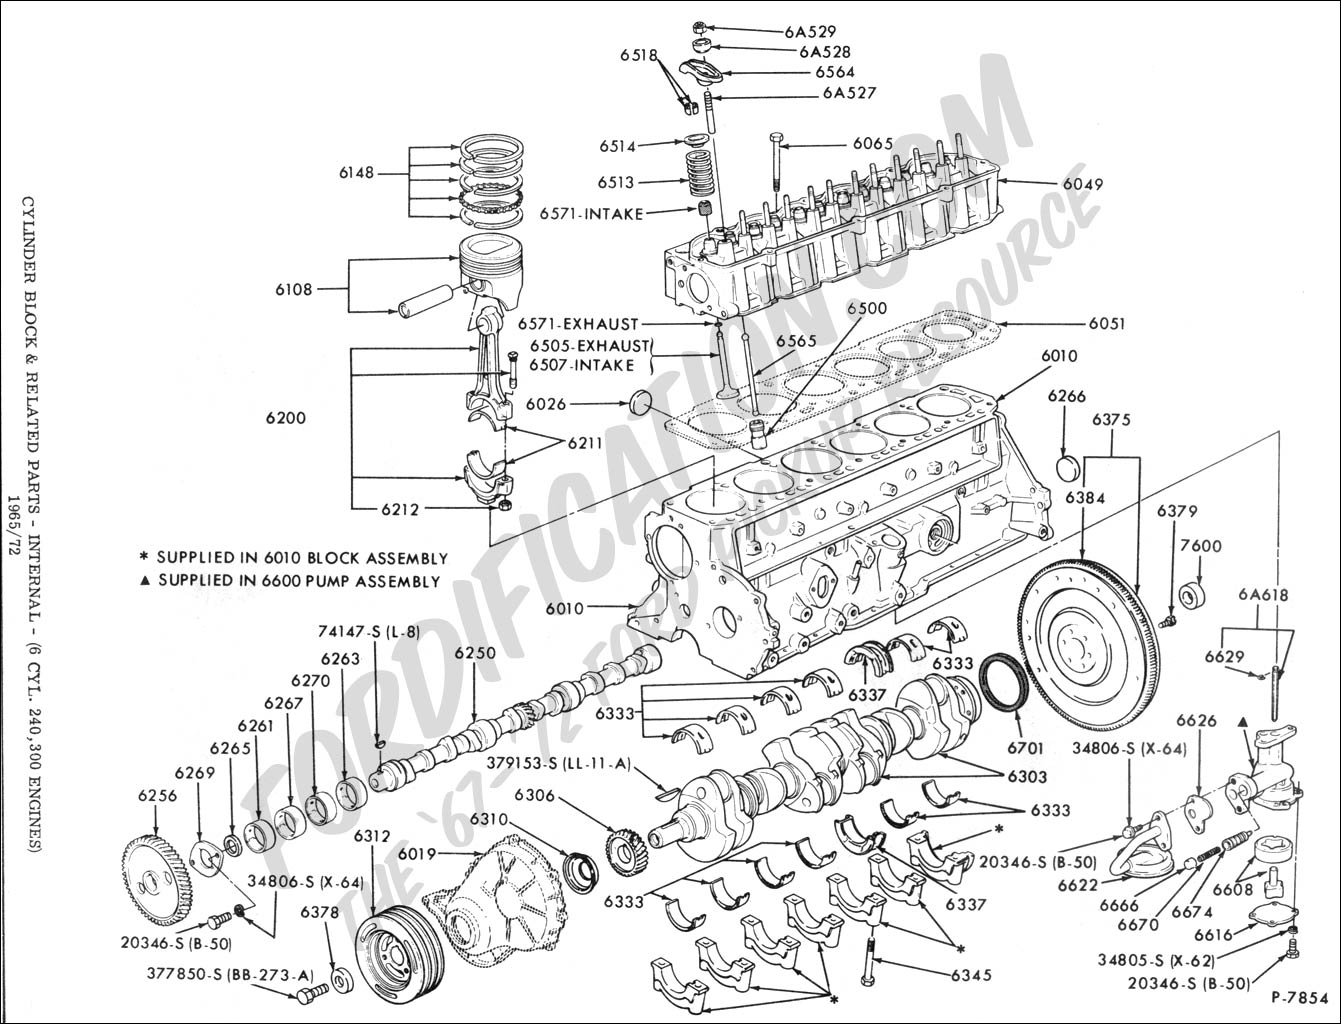 0dh3n Need Find Vacuum Hose Diagram 1991 Ford besides Chevrolet Malibu Body Control Module Location 03 also 2002 Chevy Venture Thermostat Diagram Html furthermore 2004 2009 Toyota Prius No Heat Andor P1121 P1120 P1122 P1123 in addition 2005 Chevy Impala Cooling System. on location of thermostat on 03 chevy impala